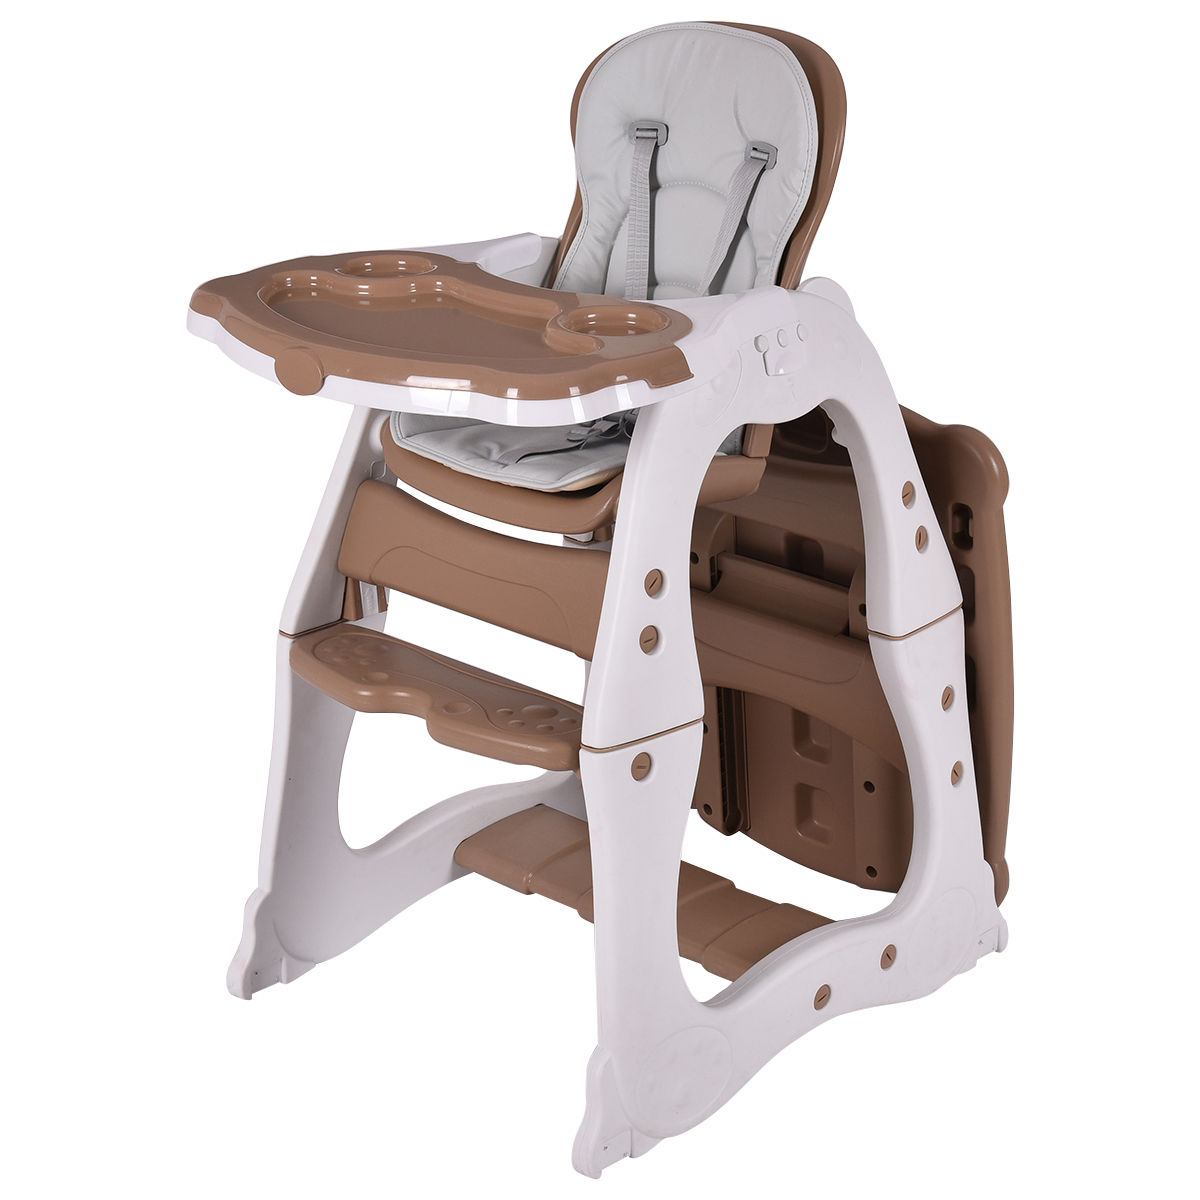 Costzon 3 In 1 Baby High Chair Desk Convertible Play Table Conversion Seat Booster Brown